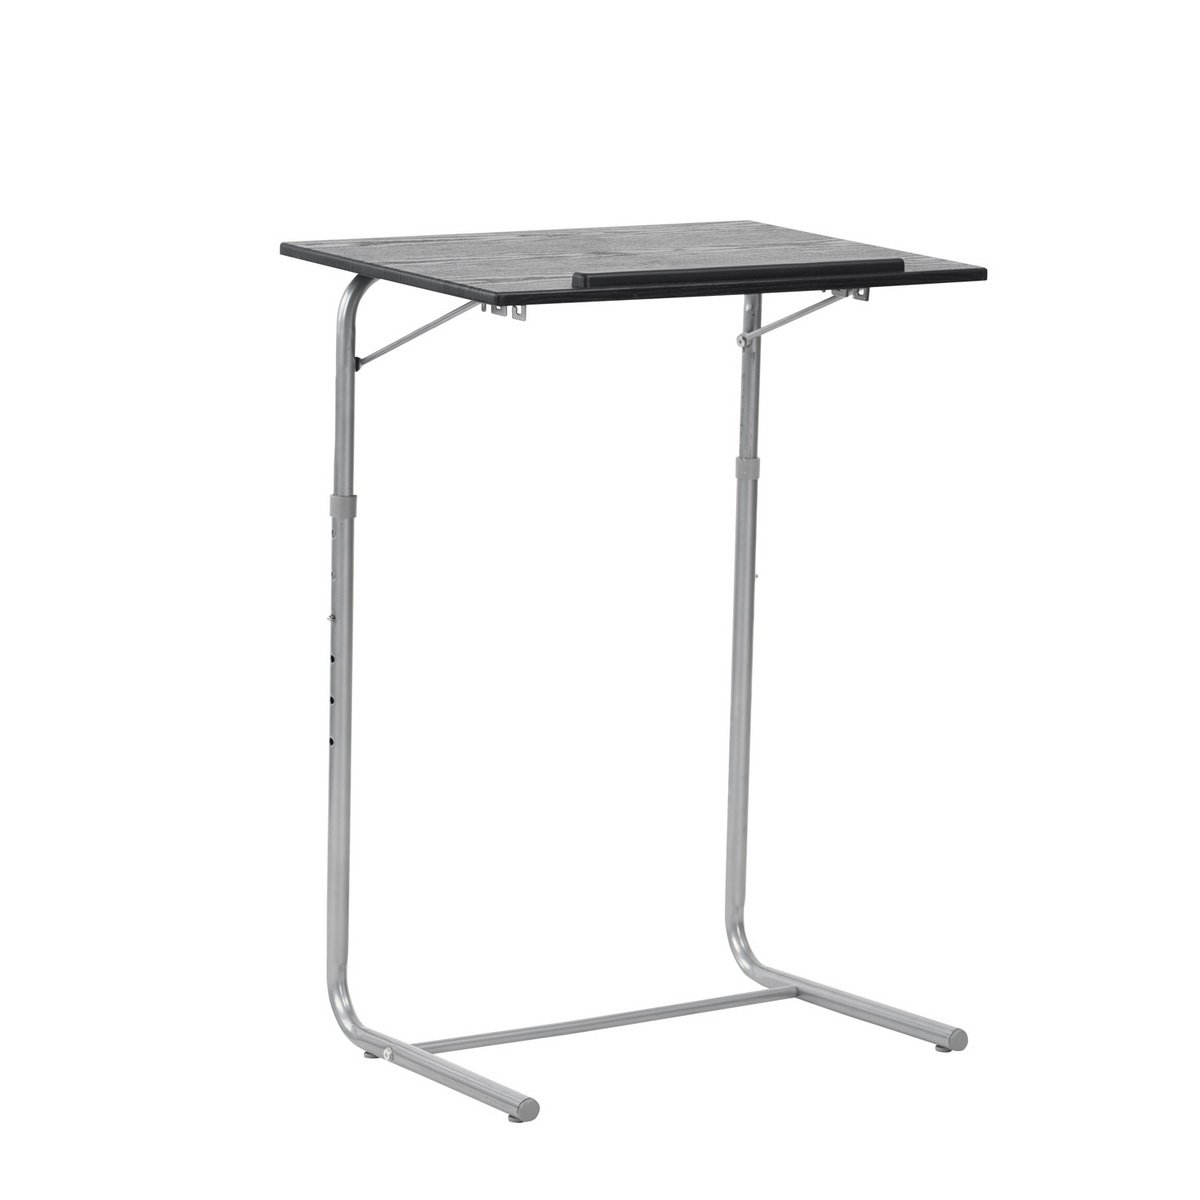 Laptop Desk Sturdy Stand Framodo Adjustable Height Computer Desktop Over Bed Sofa Notebook Table for Reading Writing, Black